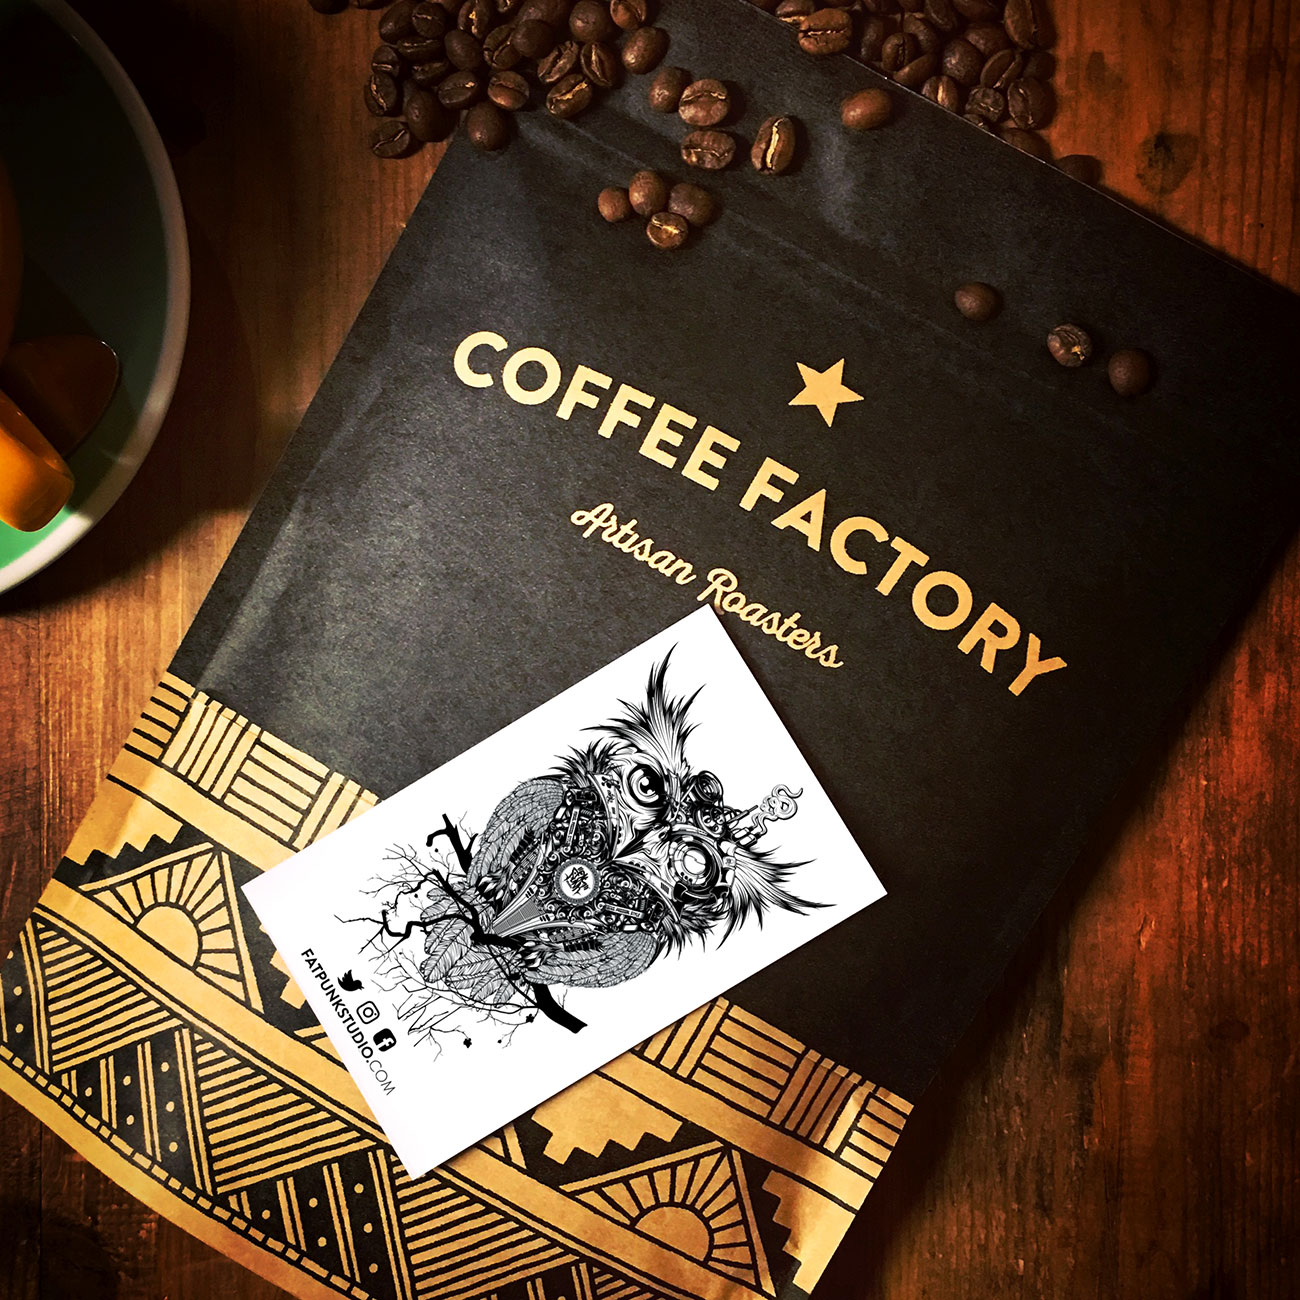 fat-punk-coffee-coffee-factory-01